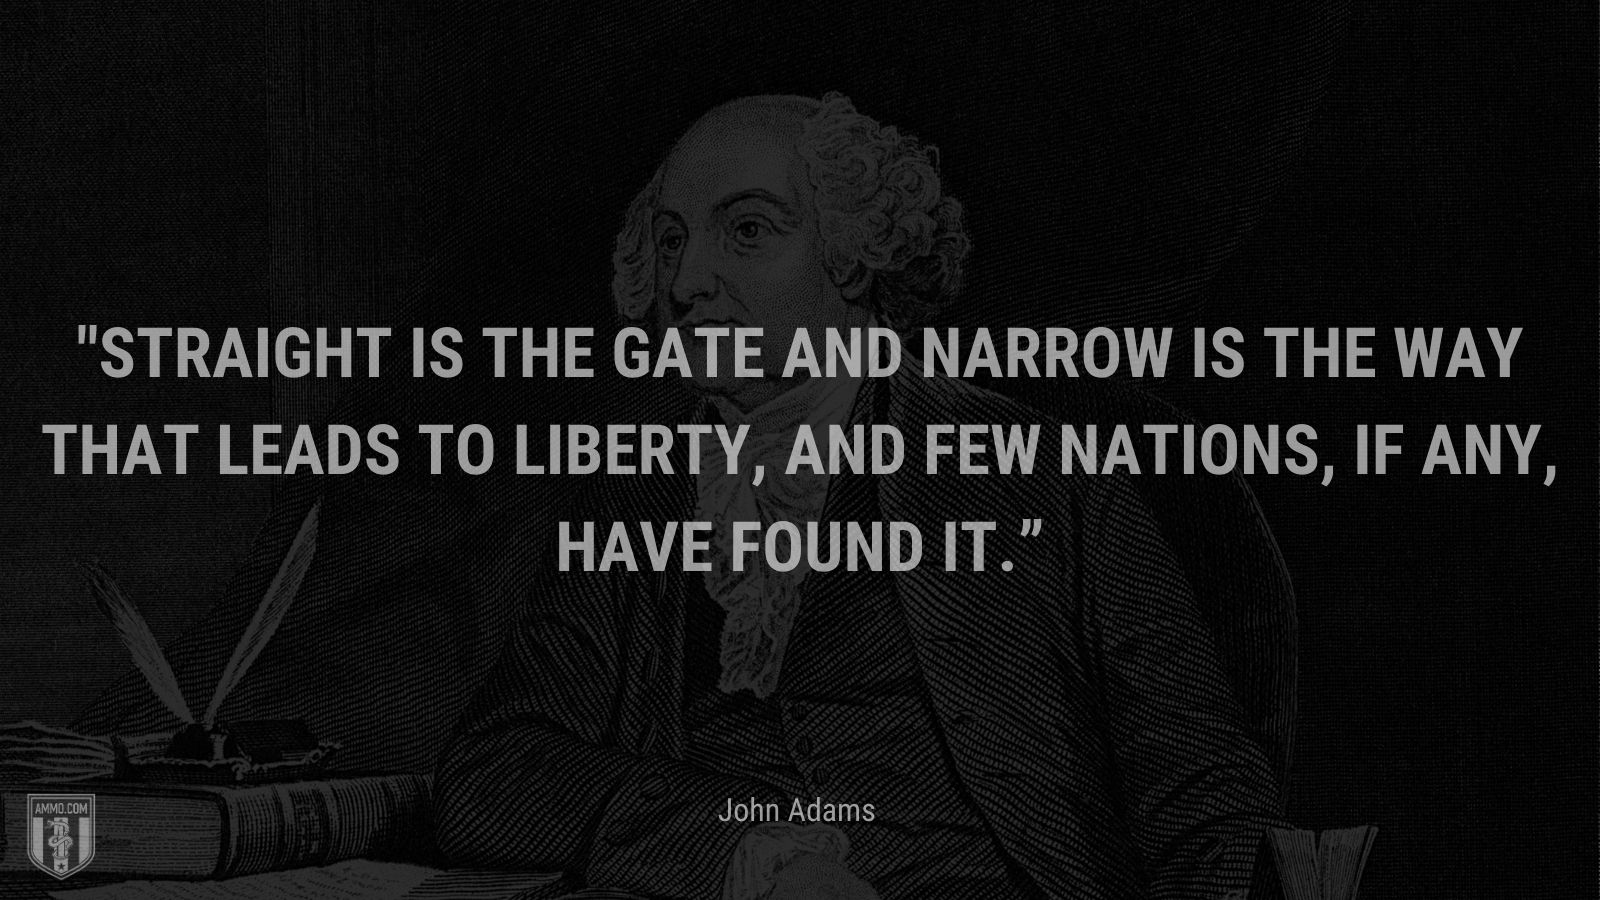 """""""Straight is the gate and narrow is the way that leads to liberty, and few nations, if any, have found it."""" - John Adams"""